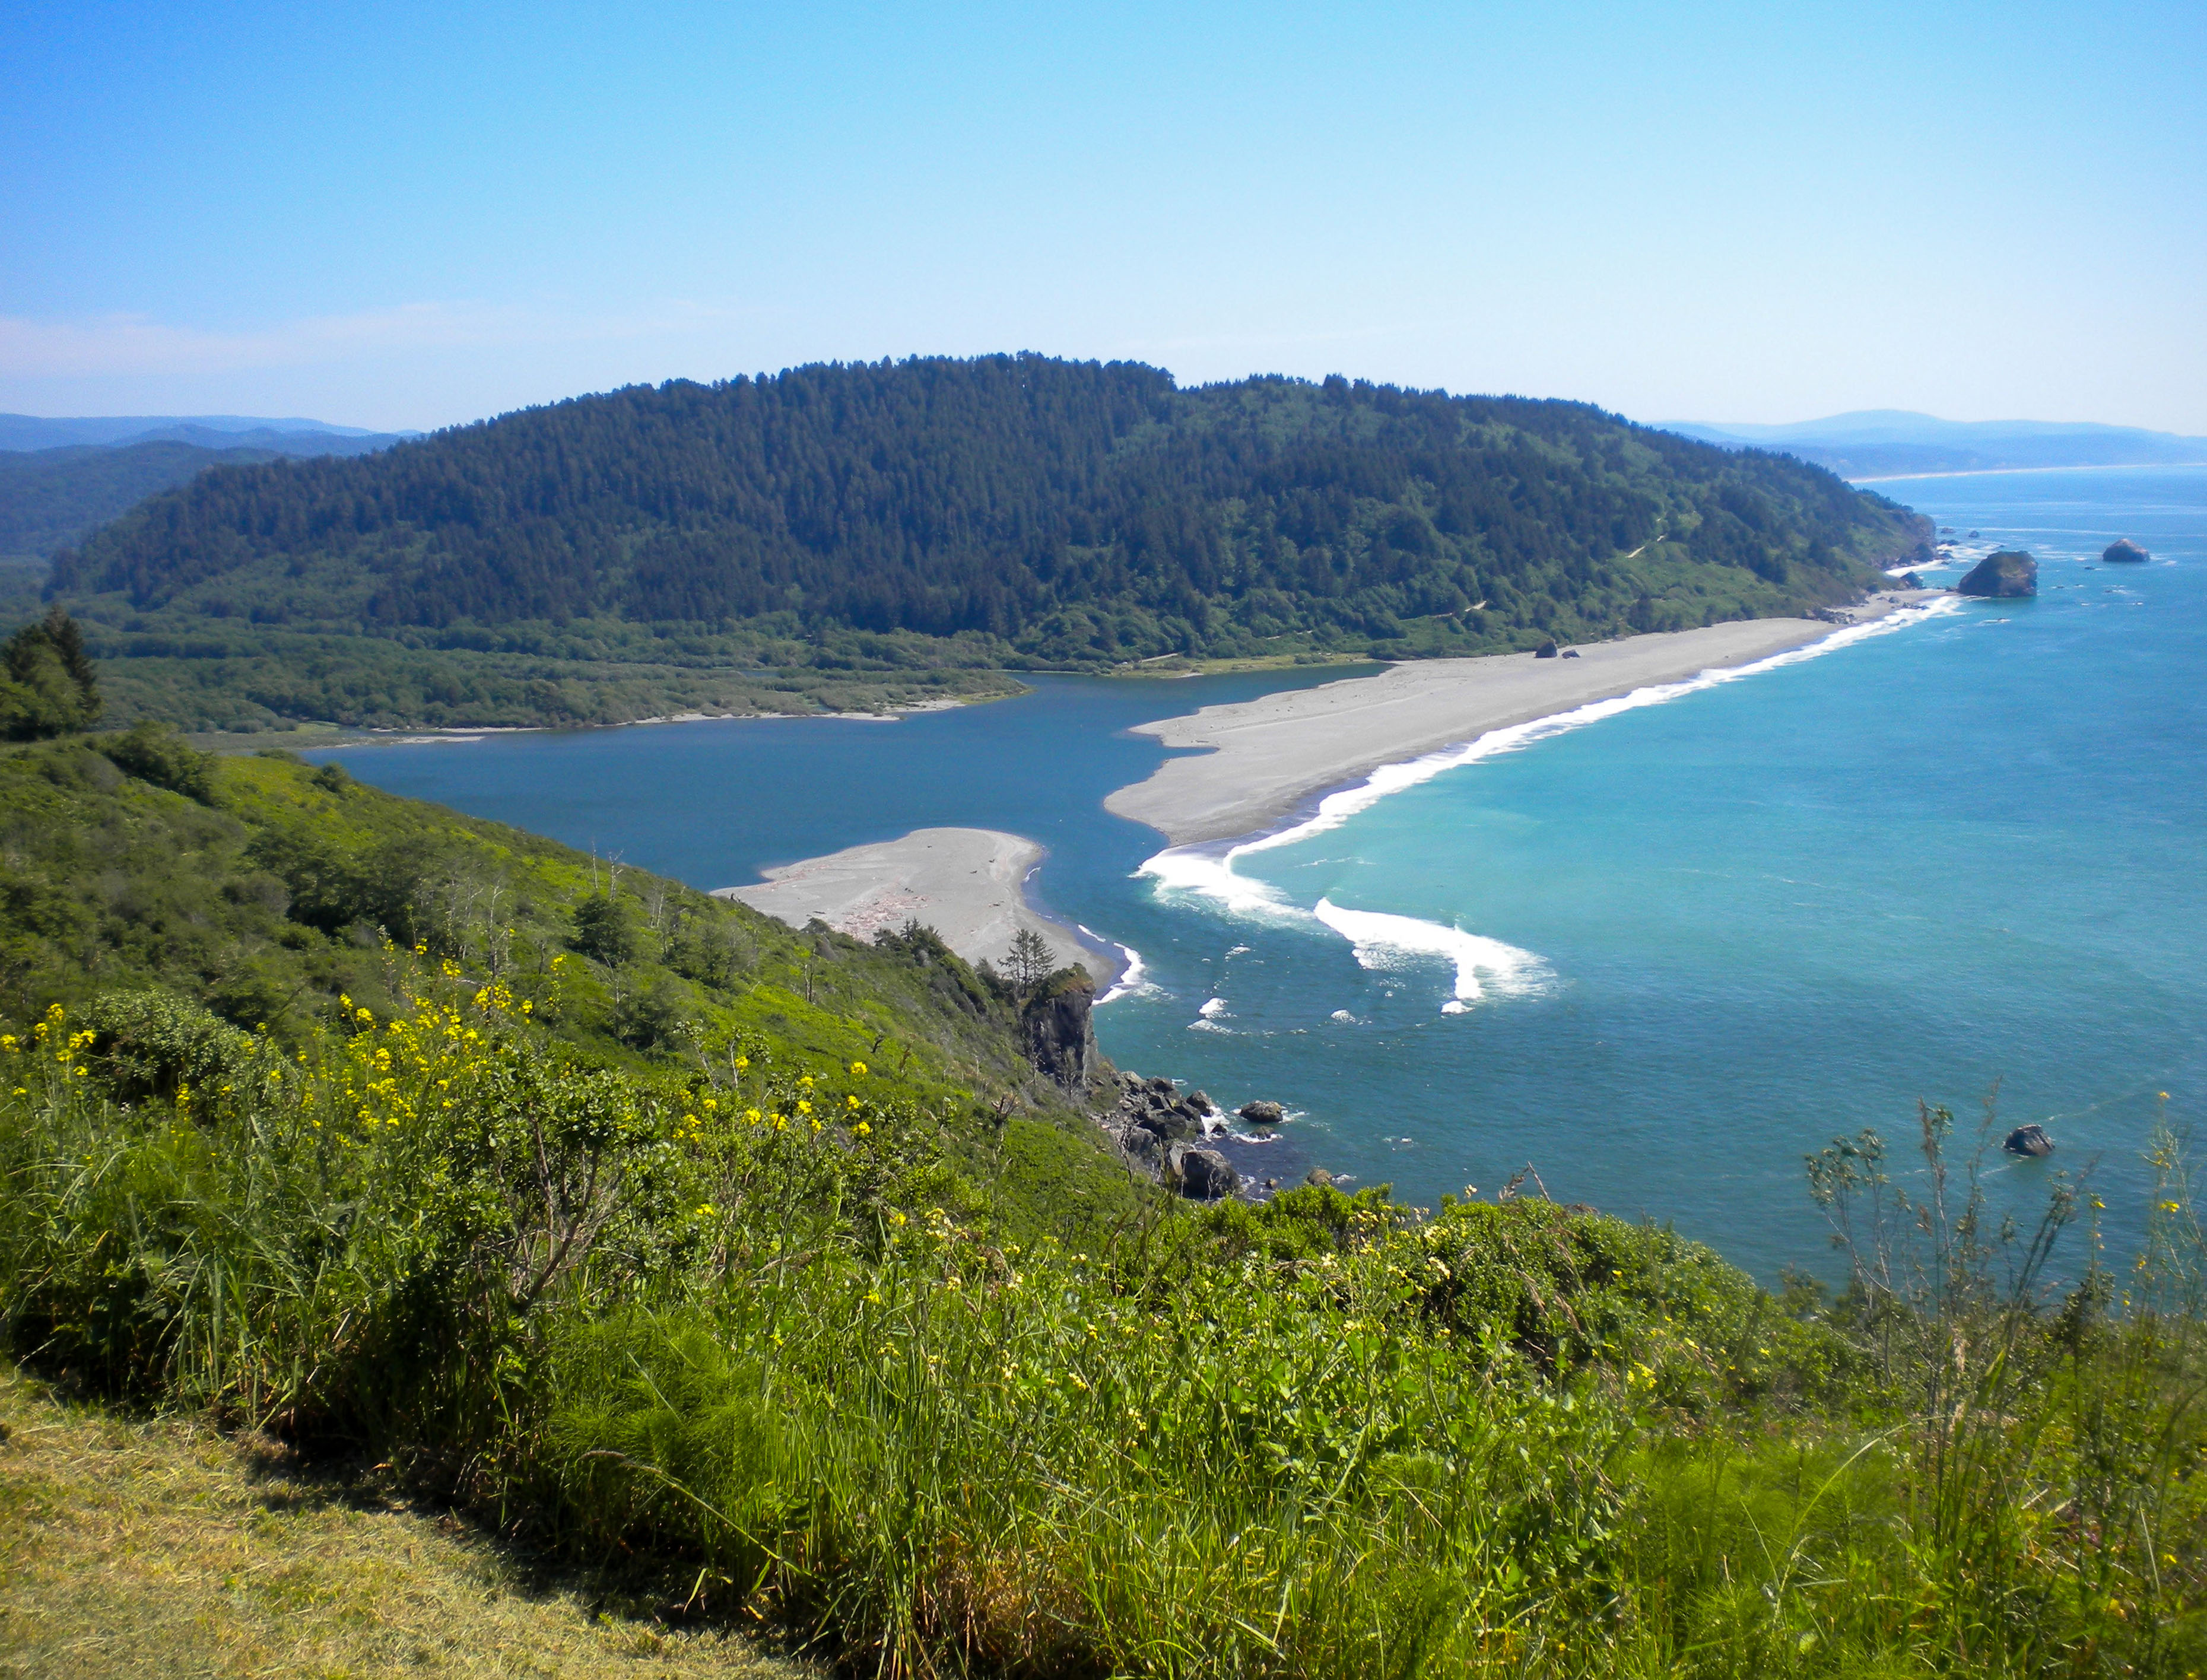 The mouth of the Klamath River where it meets the Pacific Ocean as seen from the Klamath River Overlook.